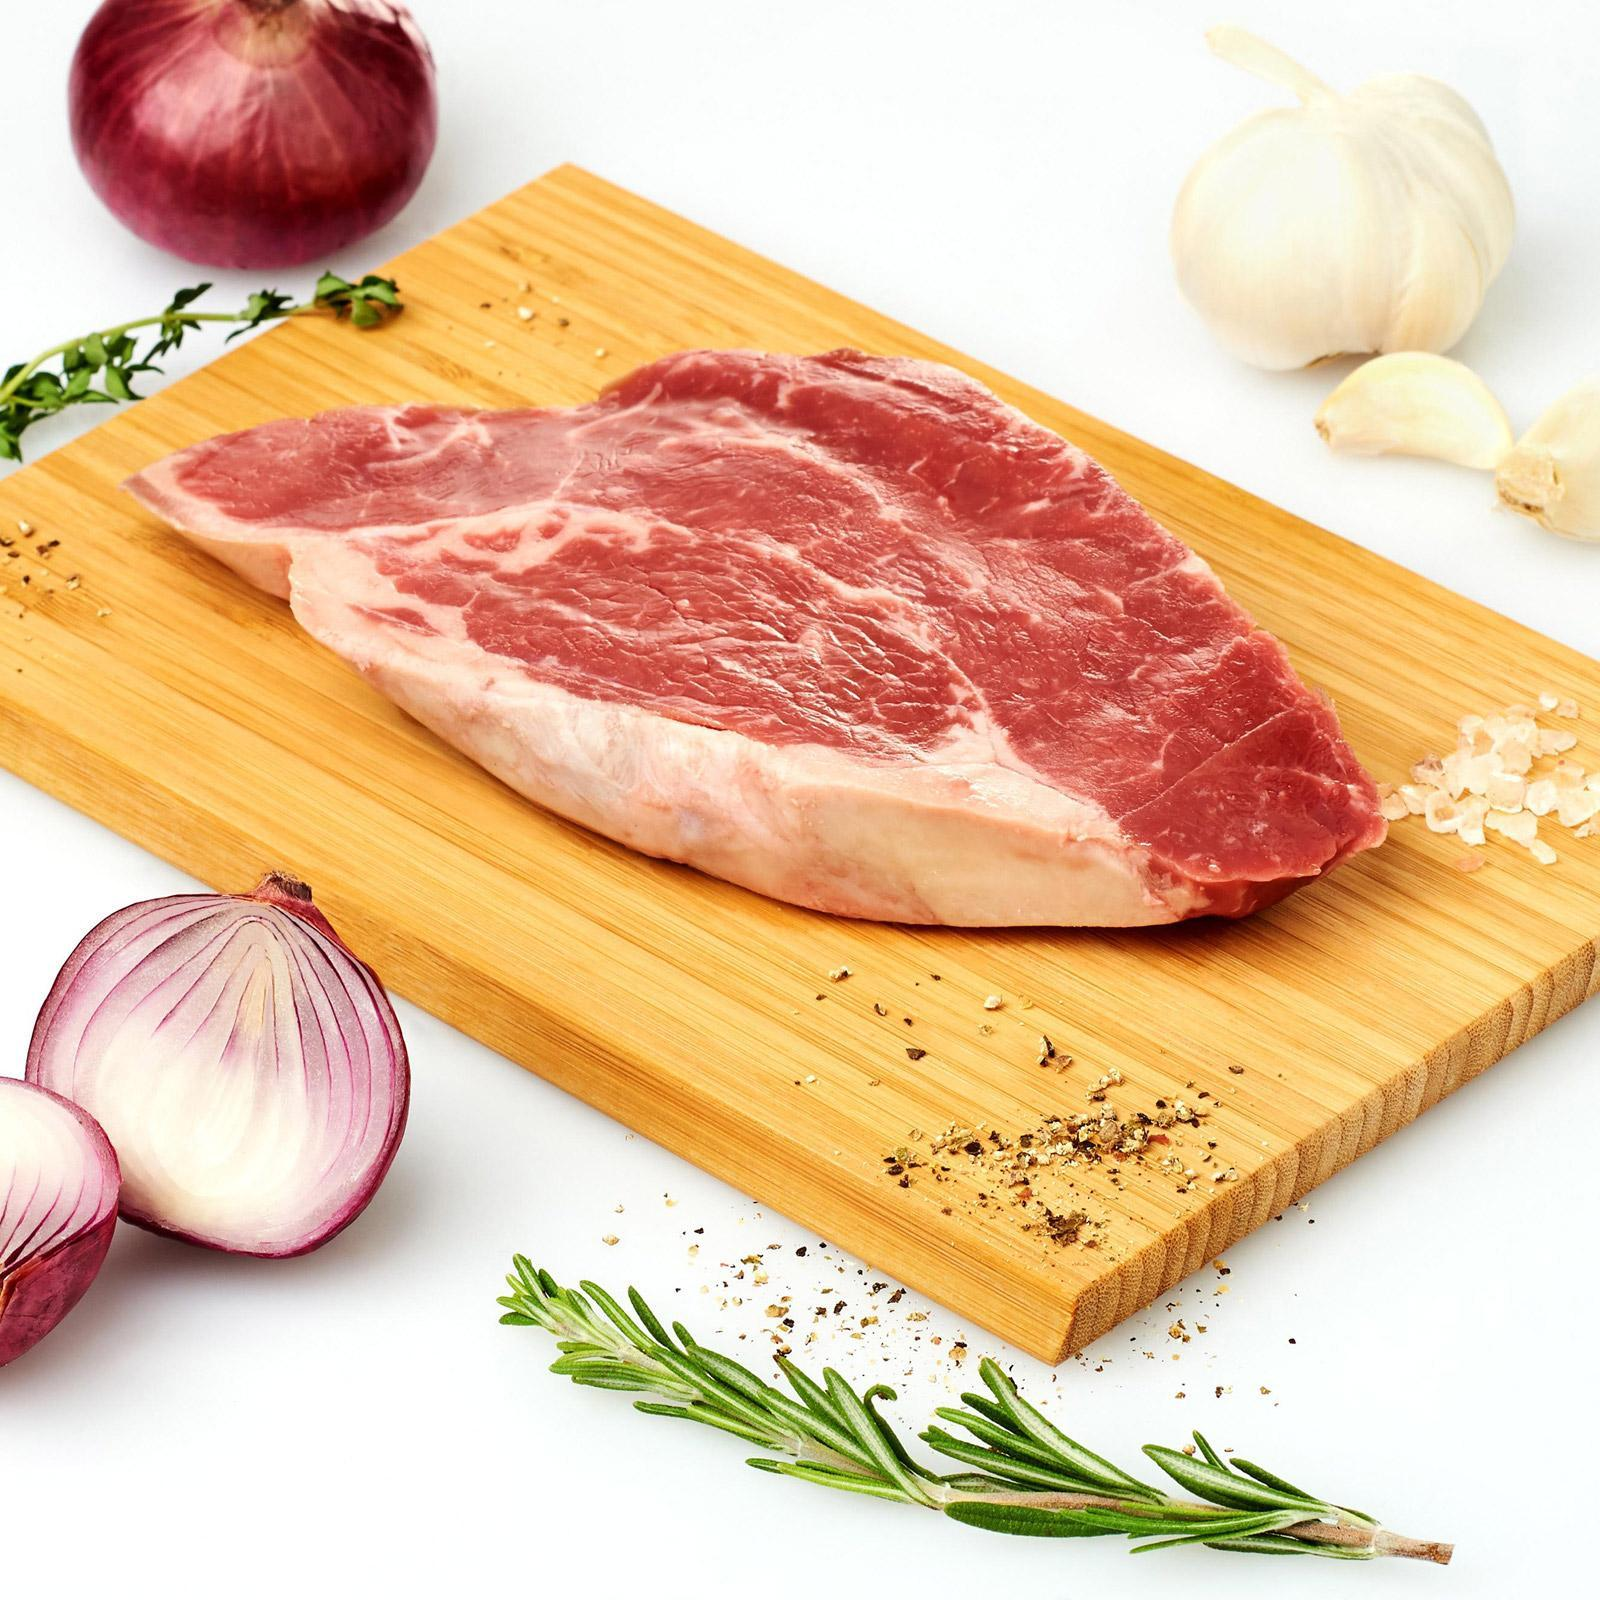 Redmart Grass Fed Sirloin Steak - Australia By Redmart.